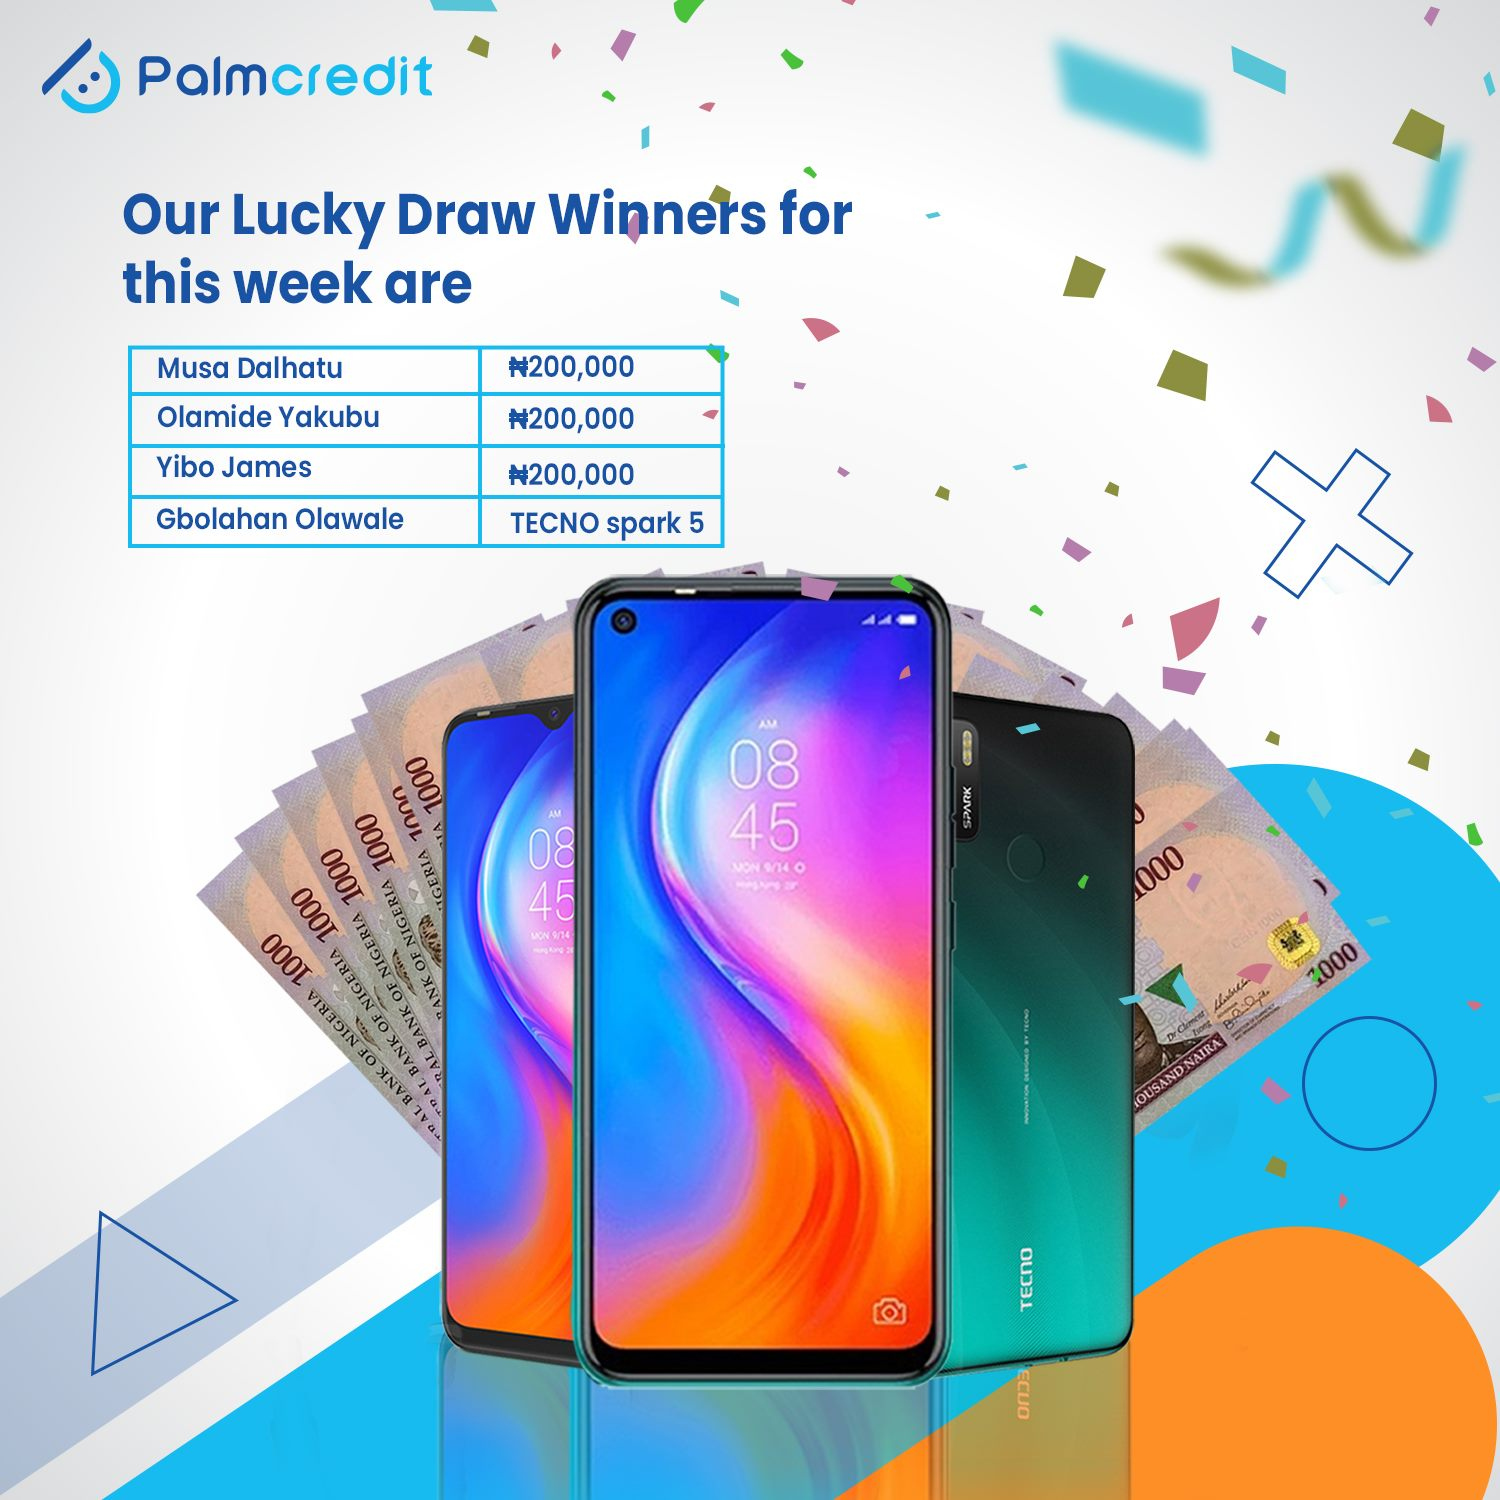 Meet this Weeks' Palmcredit Lucky Draw Winners.